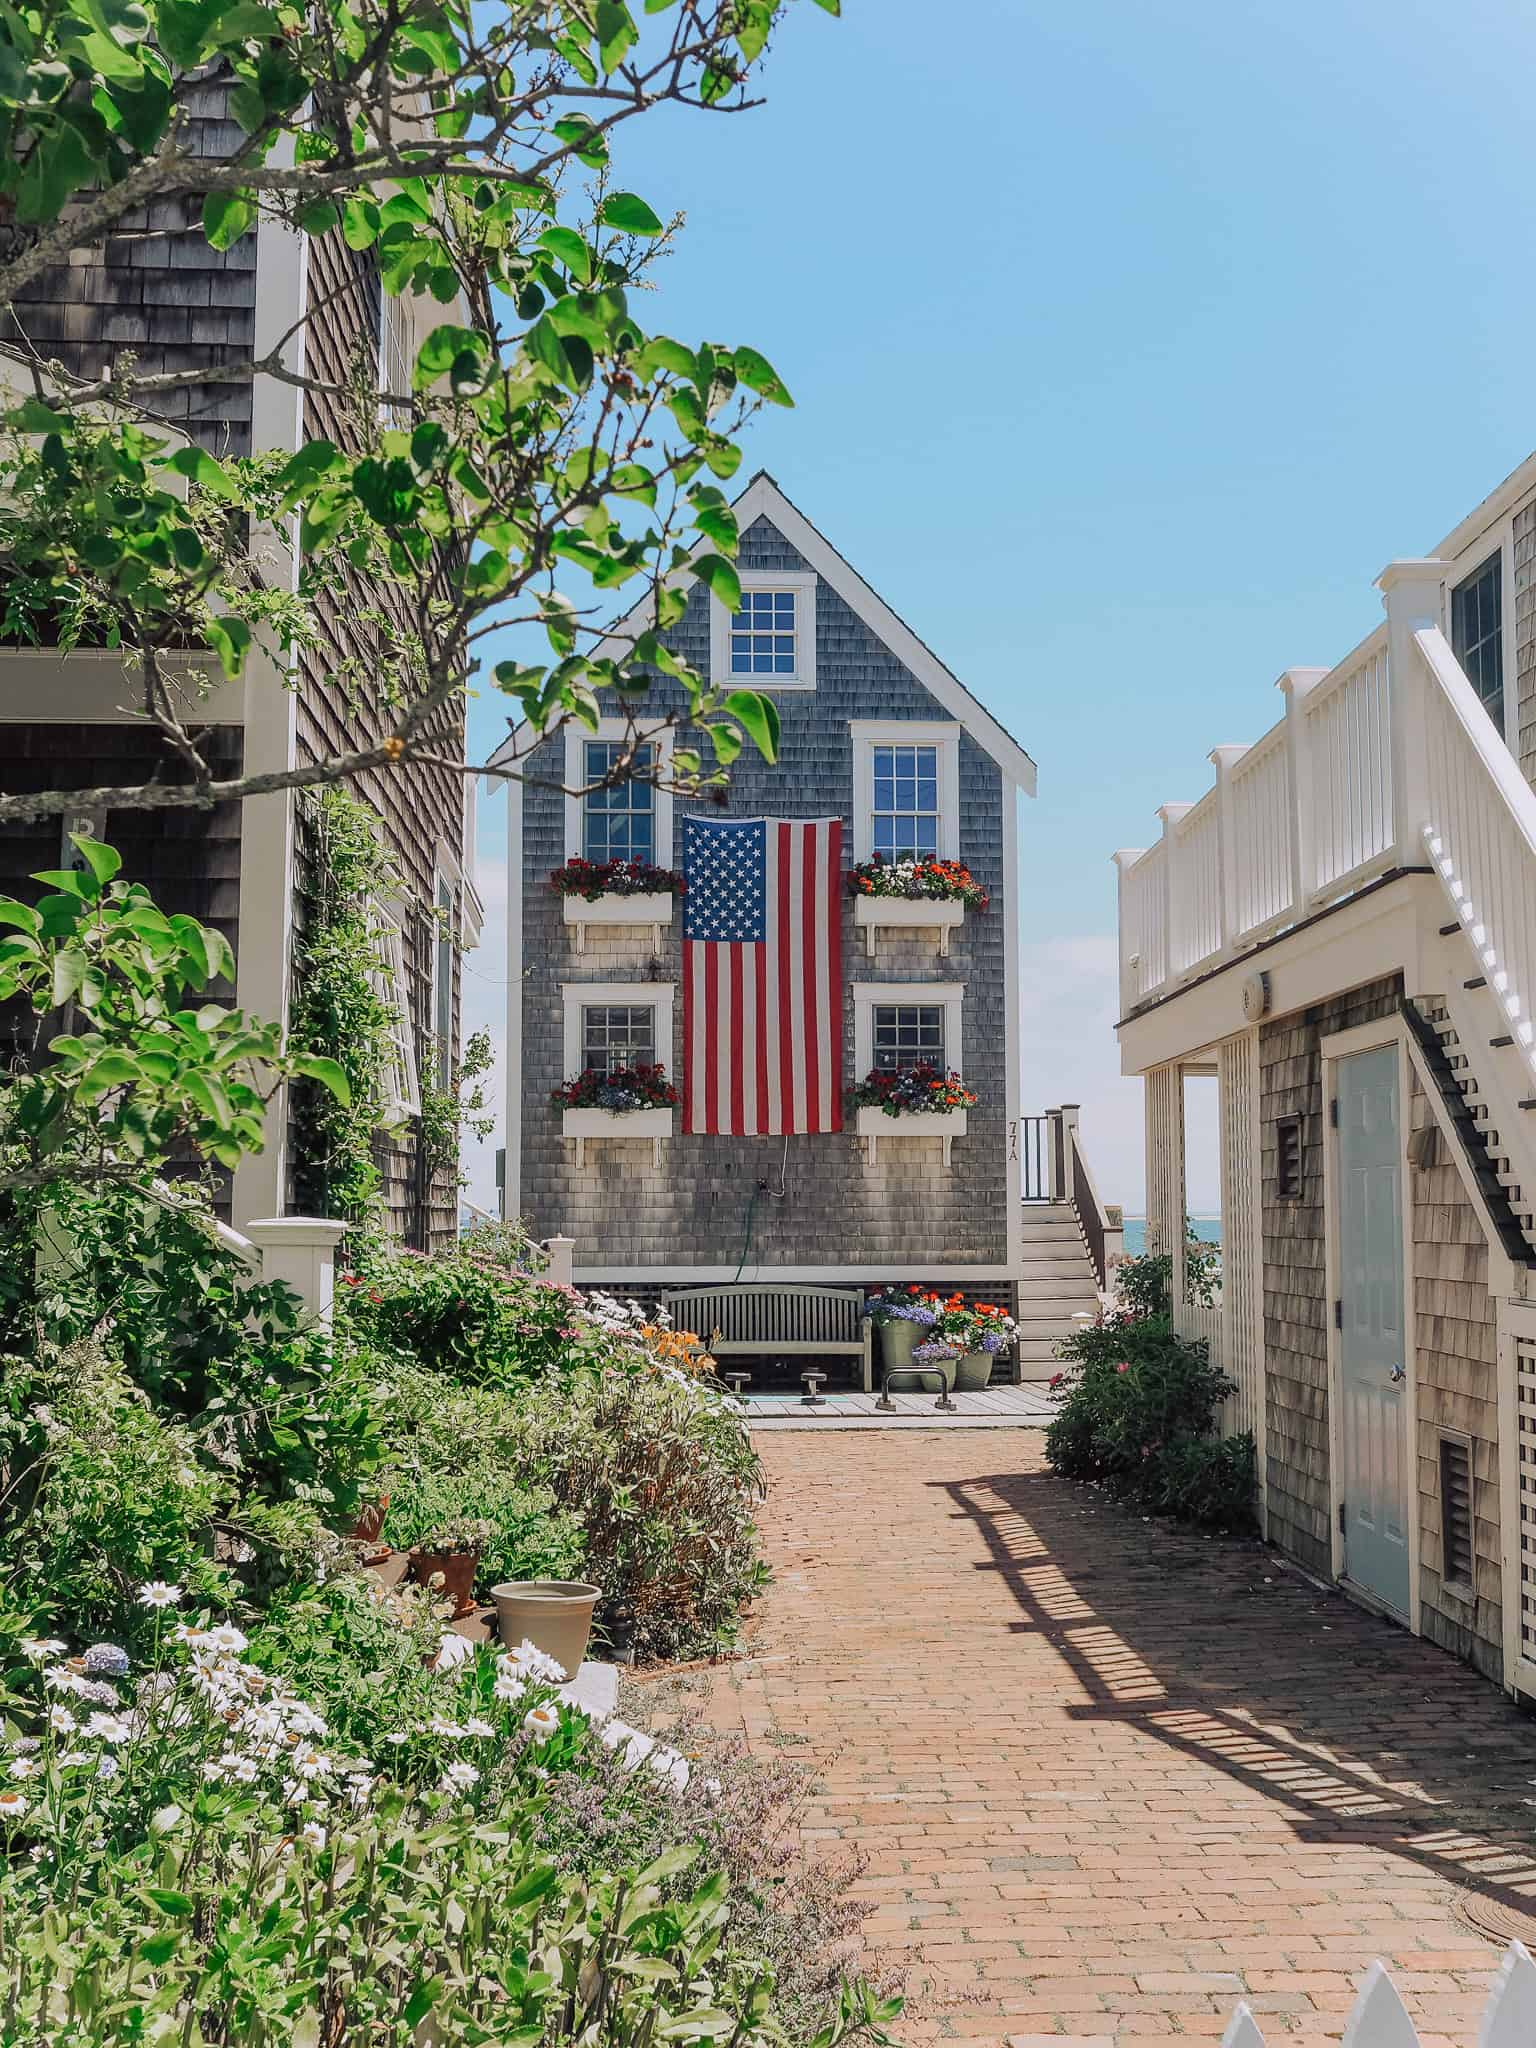 Quintessential Cape Cod Homes: Continue on Commercial Street in Provincetown, Massachusetts heading for Captain Jack's Wharf and you'll find beautiful coastal homes. Where you can find the famous American flag home tucked away.